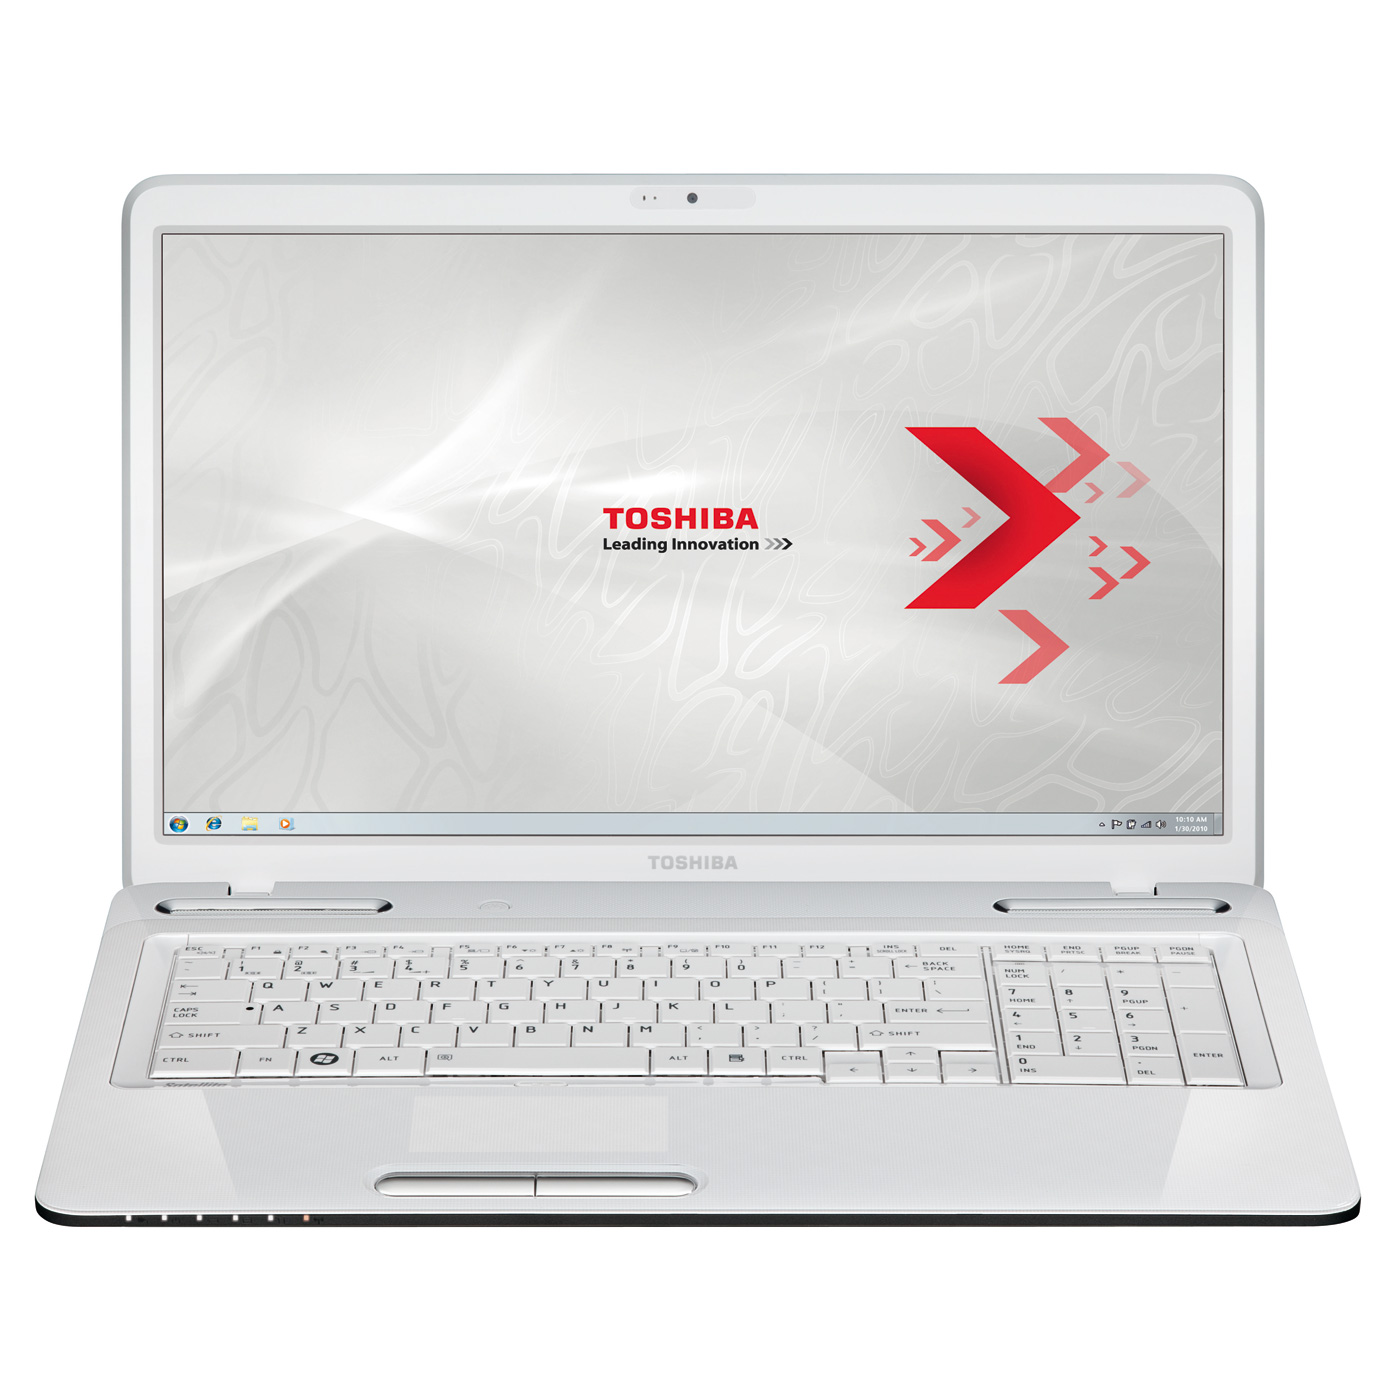 toshiba satellite l755 1ge blanc pc portable toshiba sur. Black Bedroom Furniture Sets. Home Design Ideas